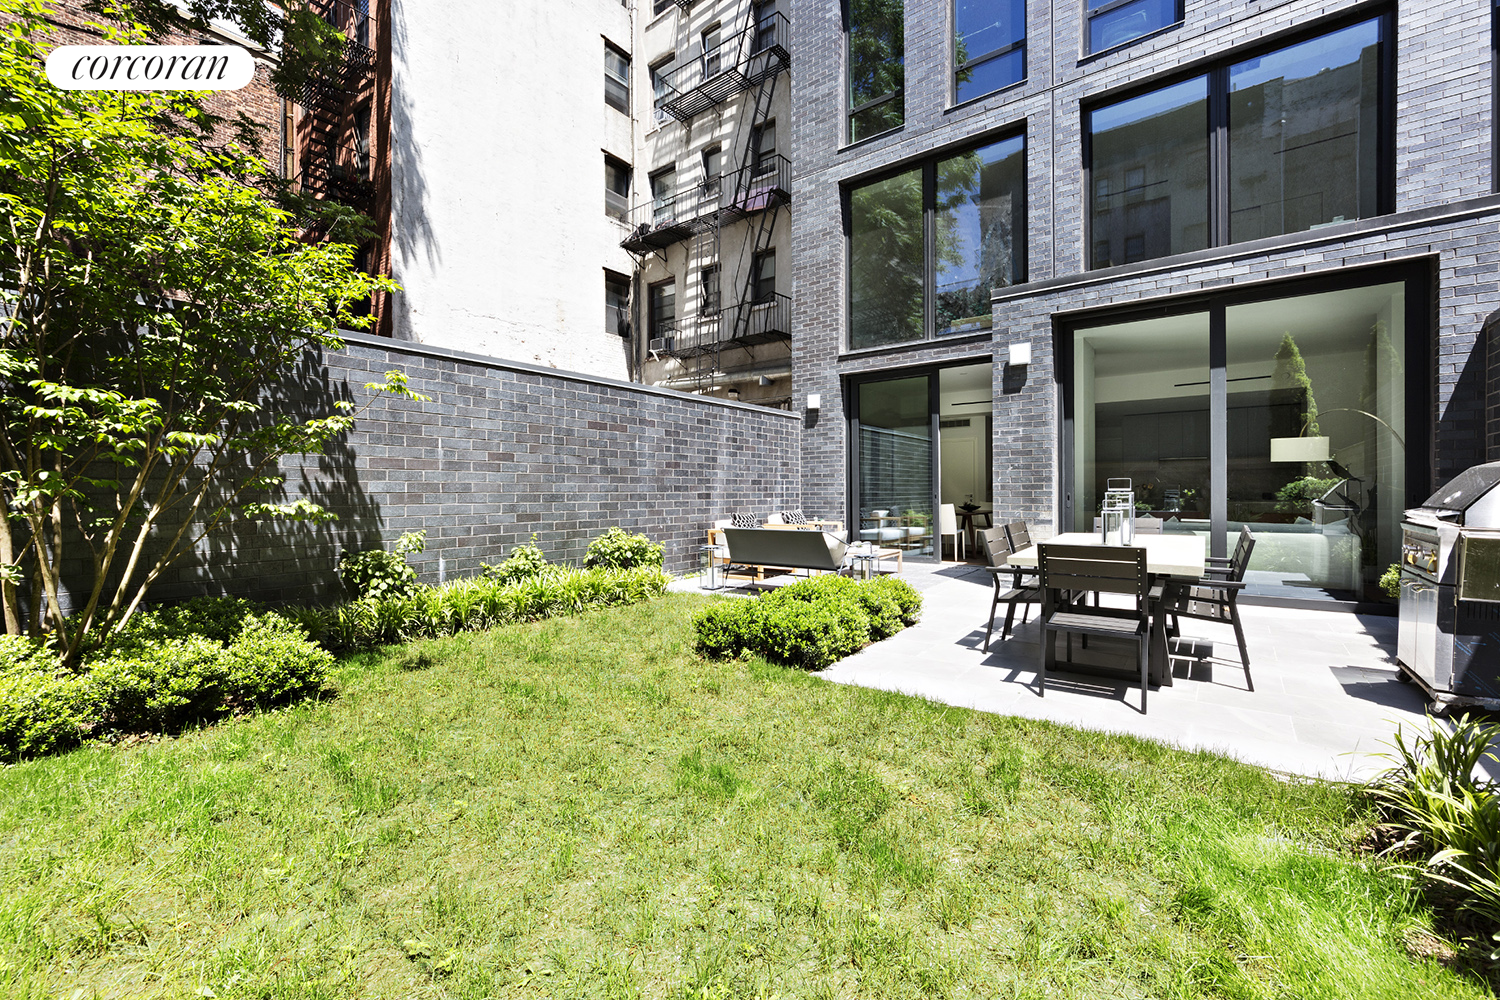 287 EAST HOUSTON ST, MAISONETTE, Appx 800sf Private Garden with gas grill